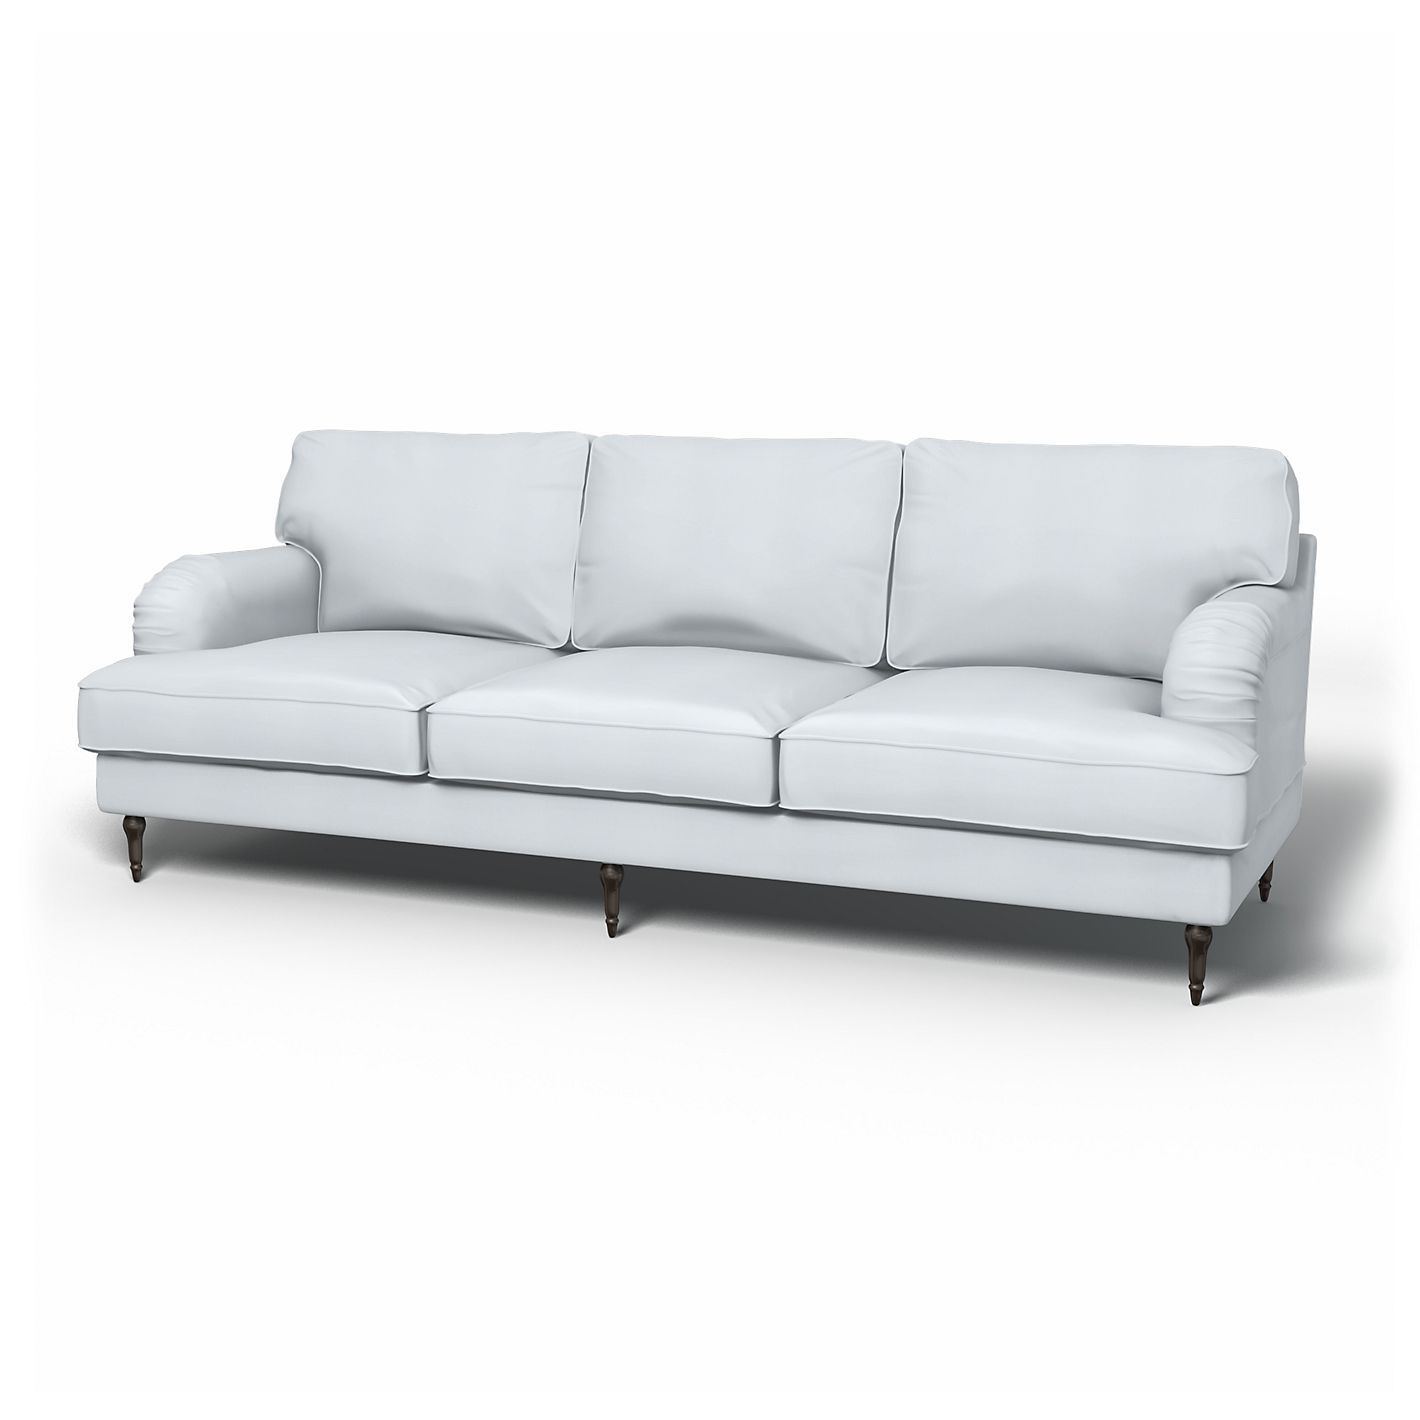 Karlstad Sofa Covers 3 Seater Regular Fit Panama Cotton A Paler Shade Of Grey Sofa Covers Sofa Ikea Couch